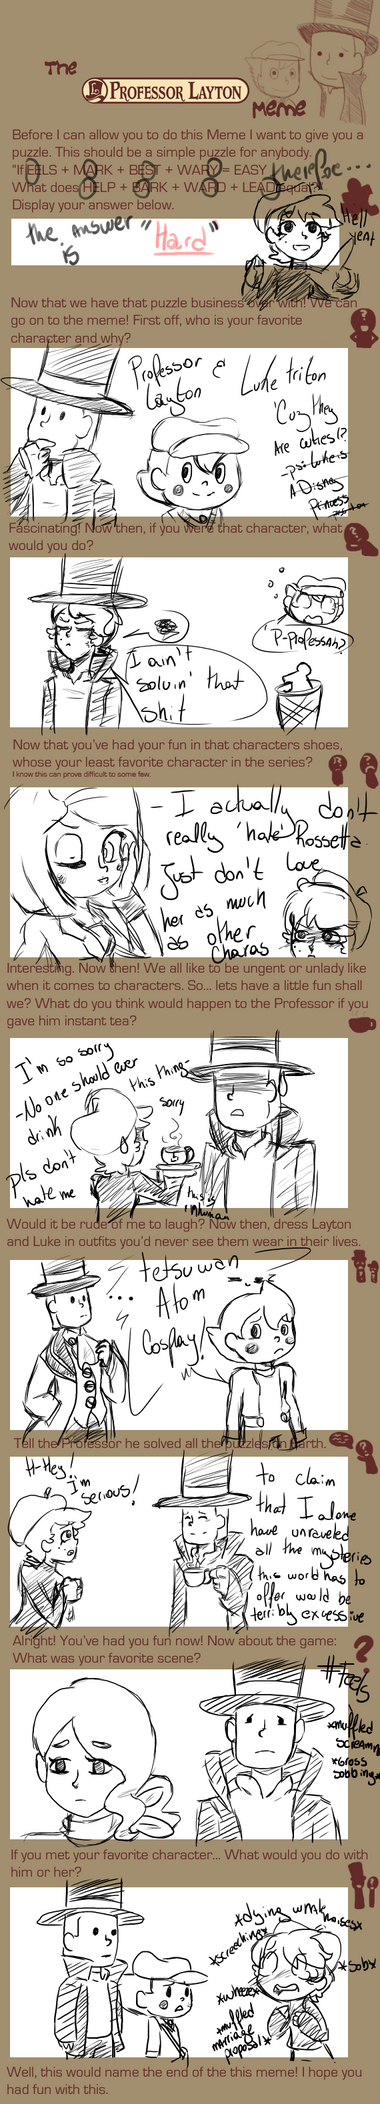 Professor Layton meme by Franny-draws-shit